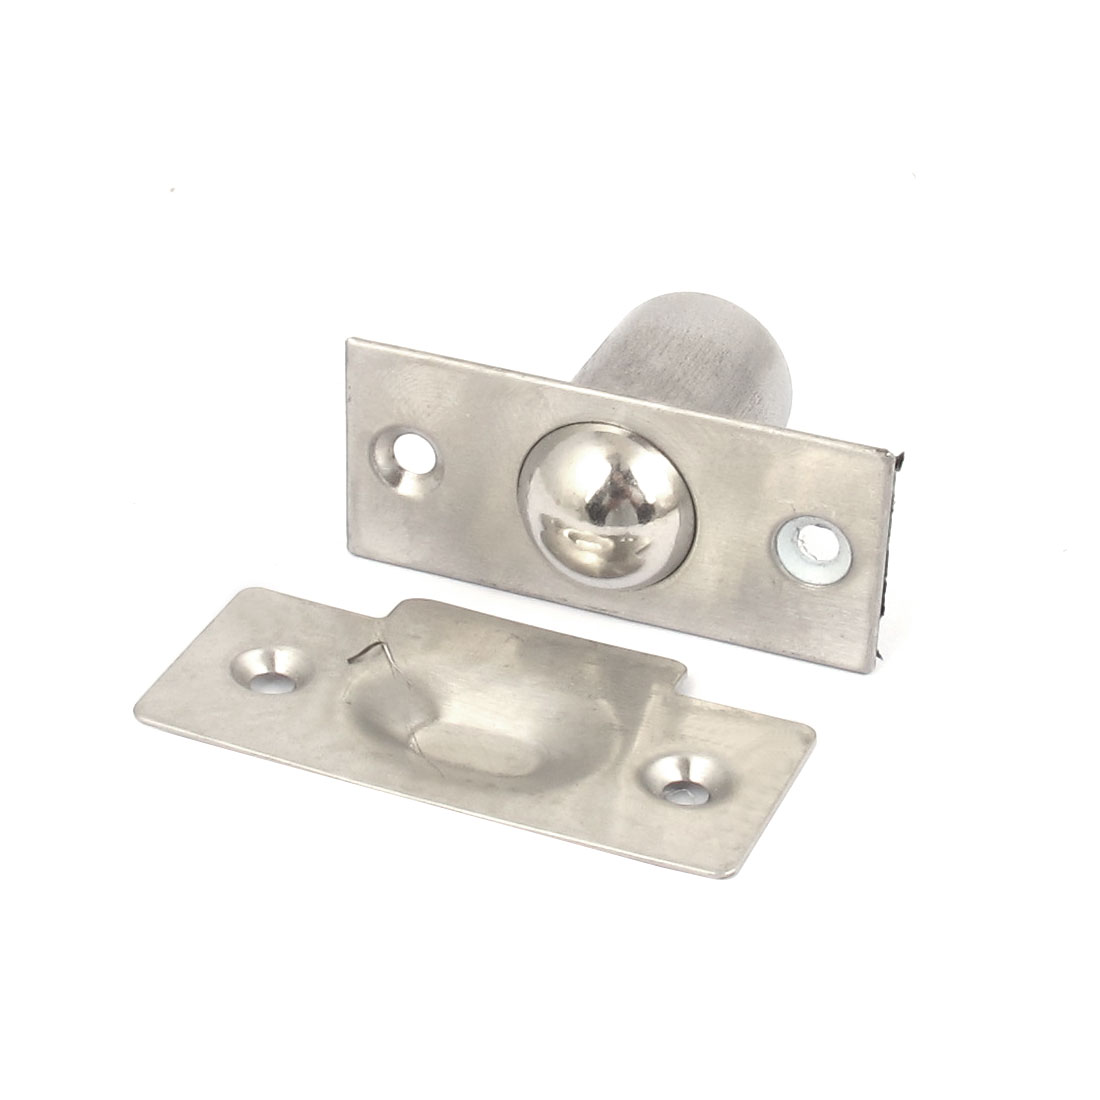 Cabinets Closet Door Stainless Steel Ball Catch Latch Catcher Set Silver Tone